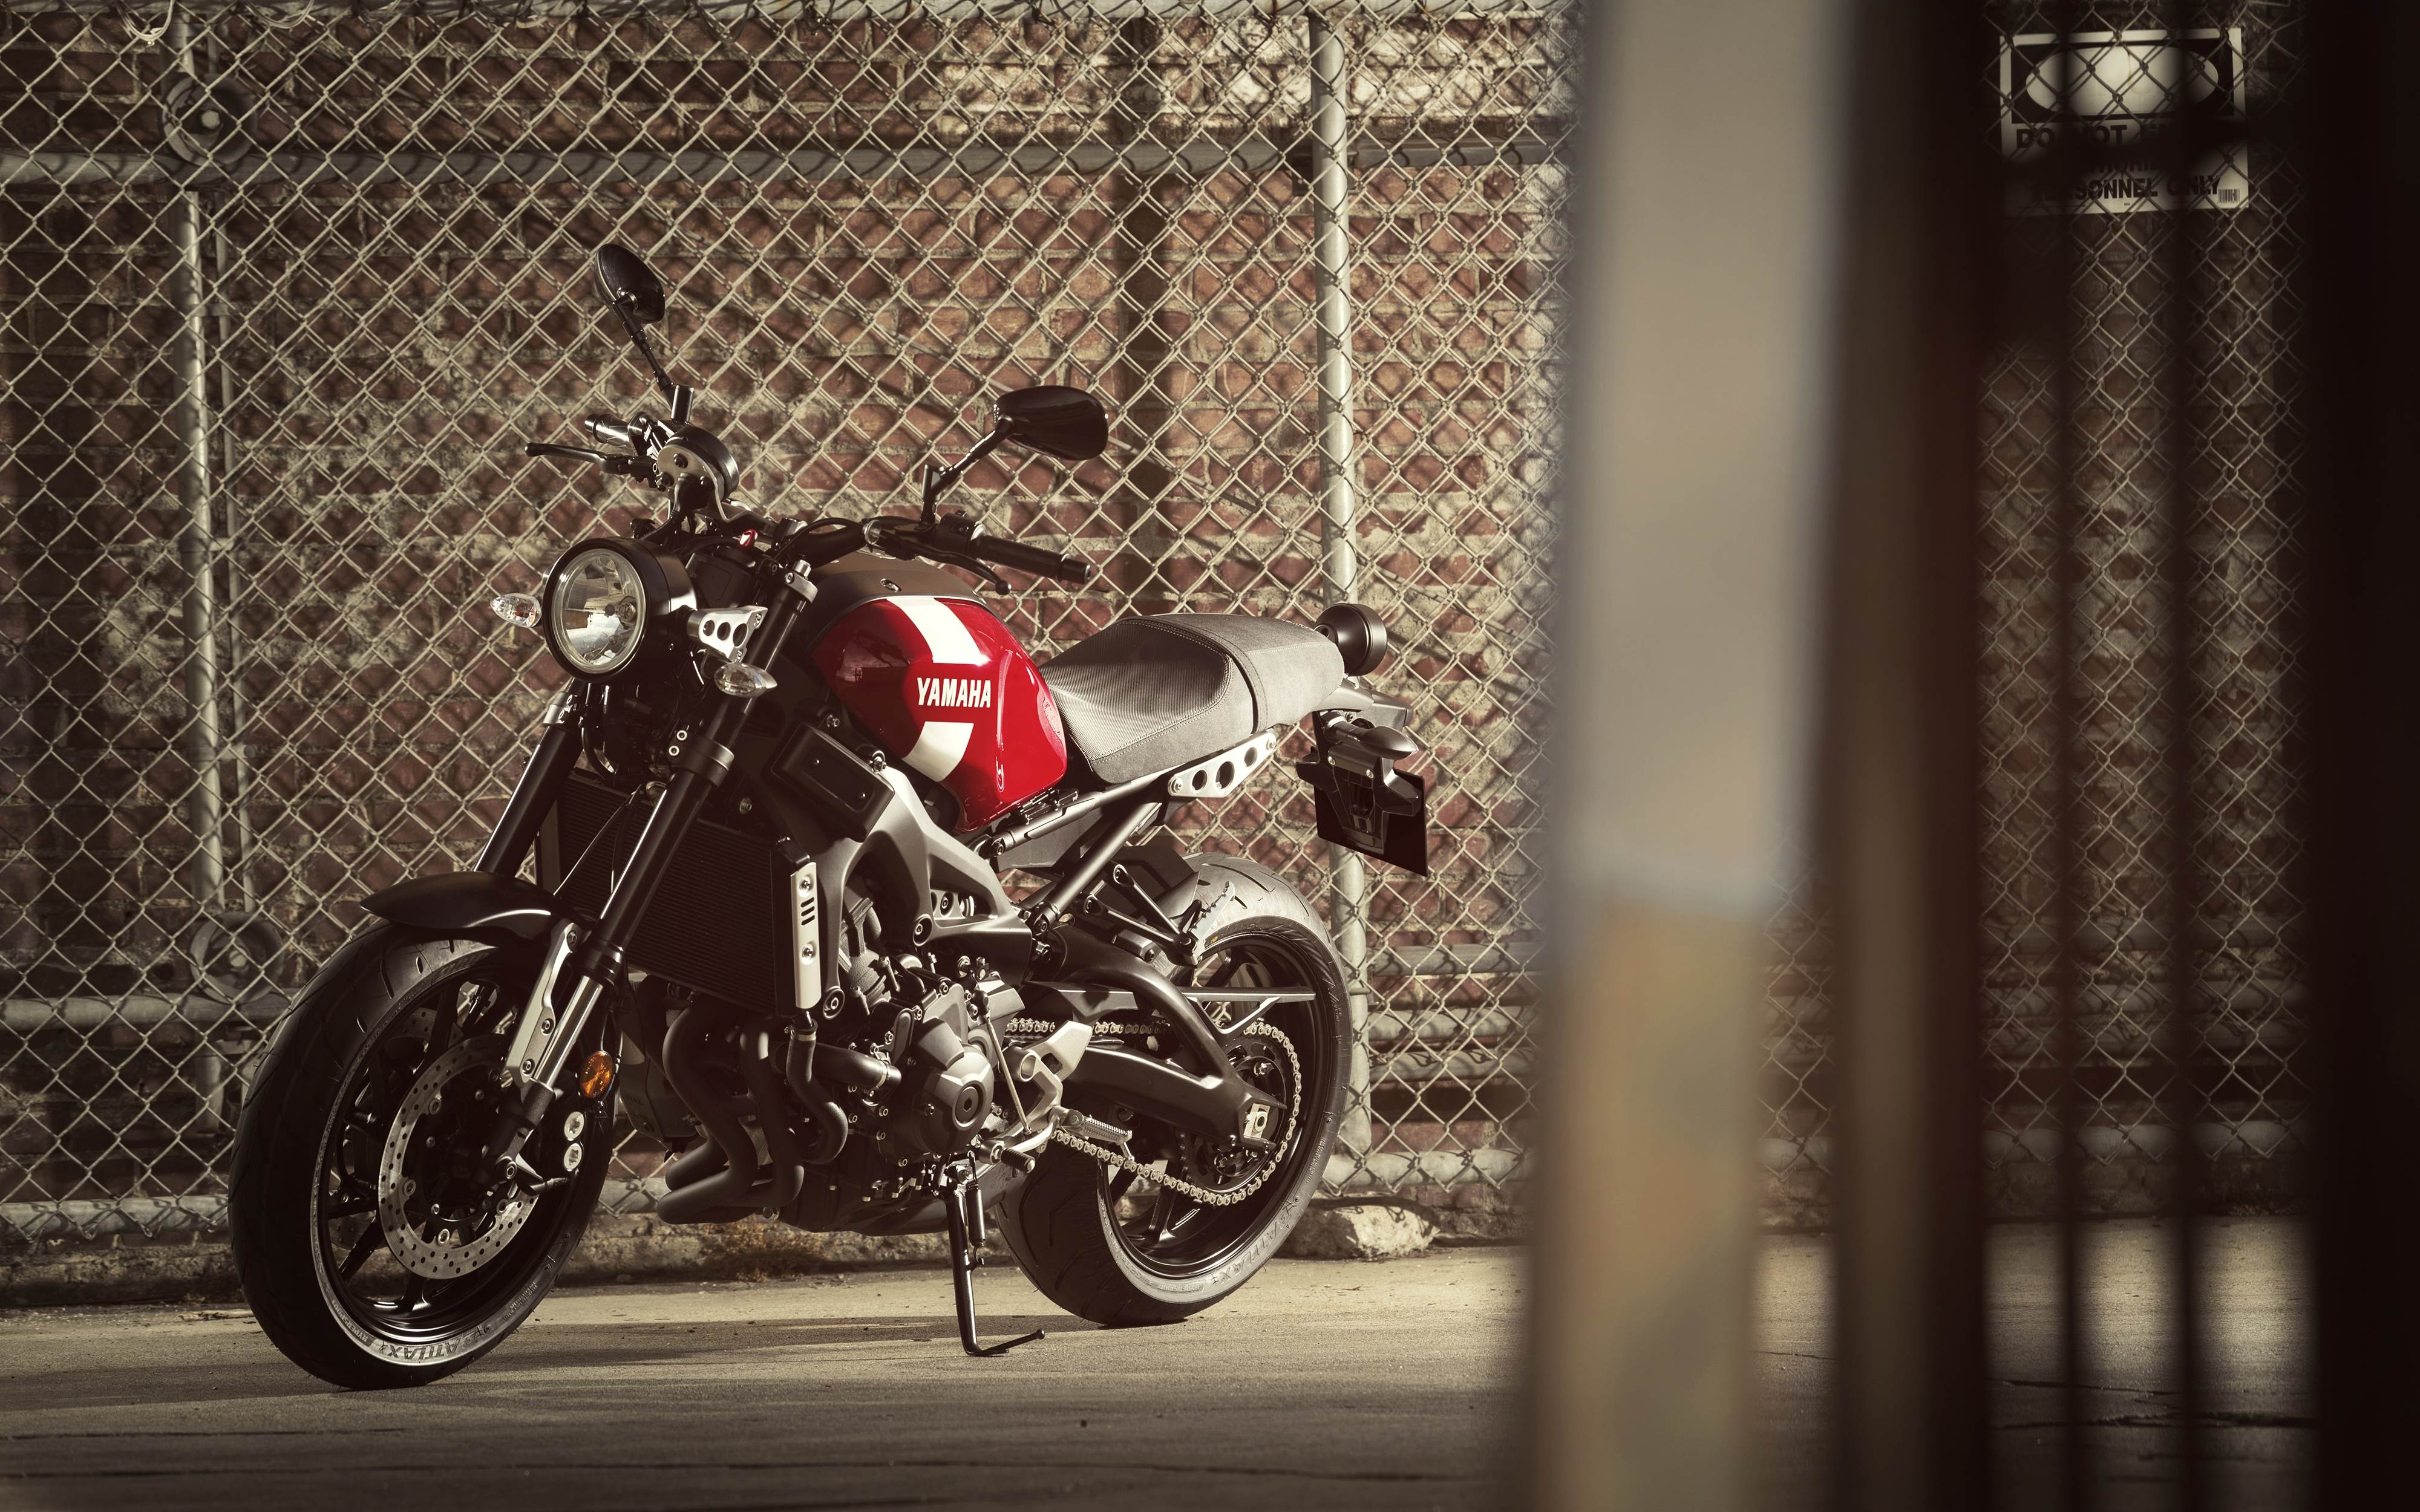 2018 Yamaha XSR900 4K Wallpapers